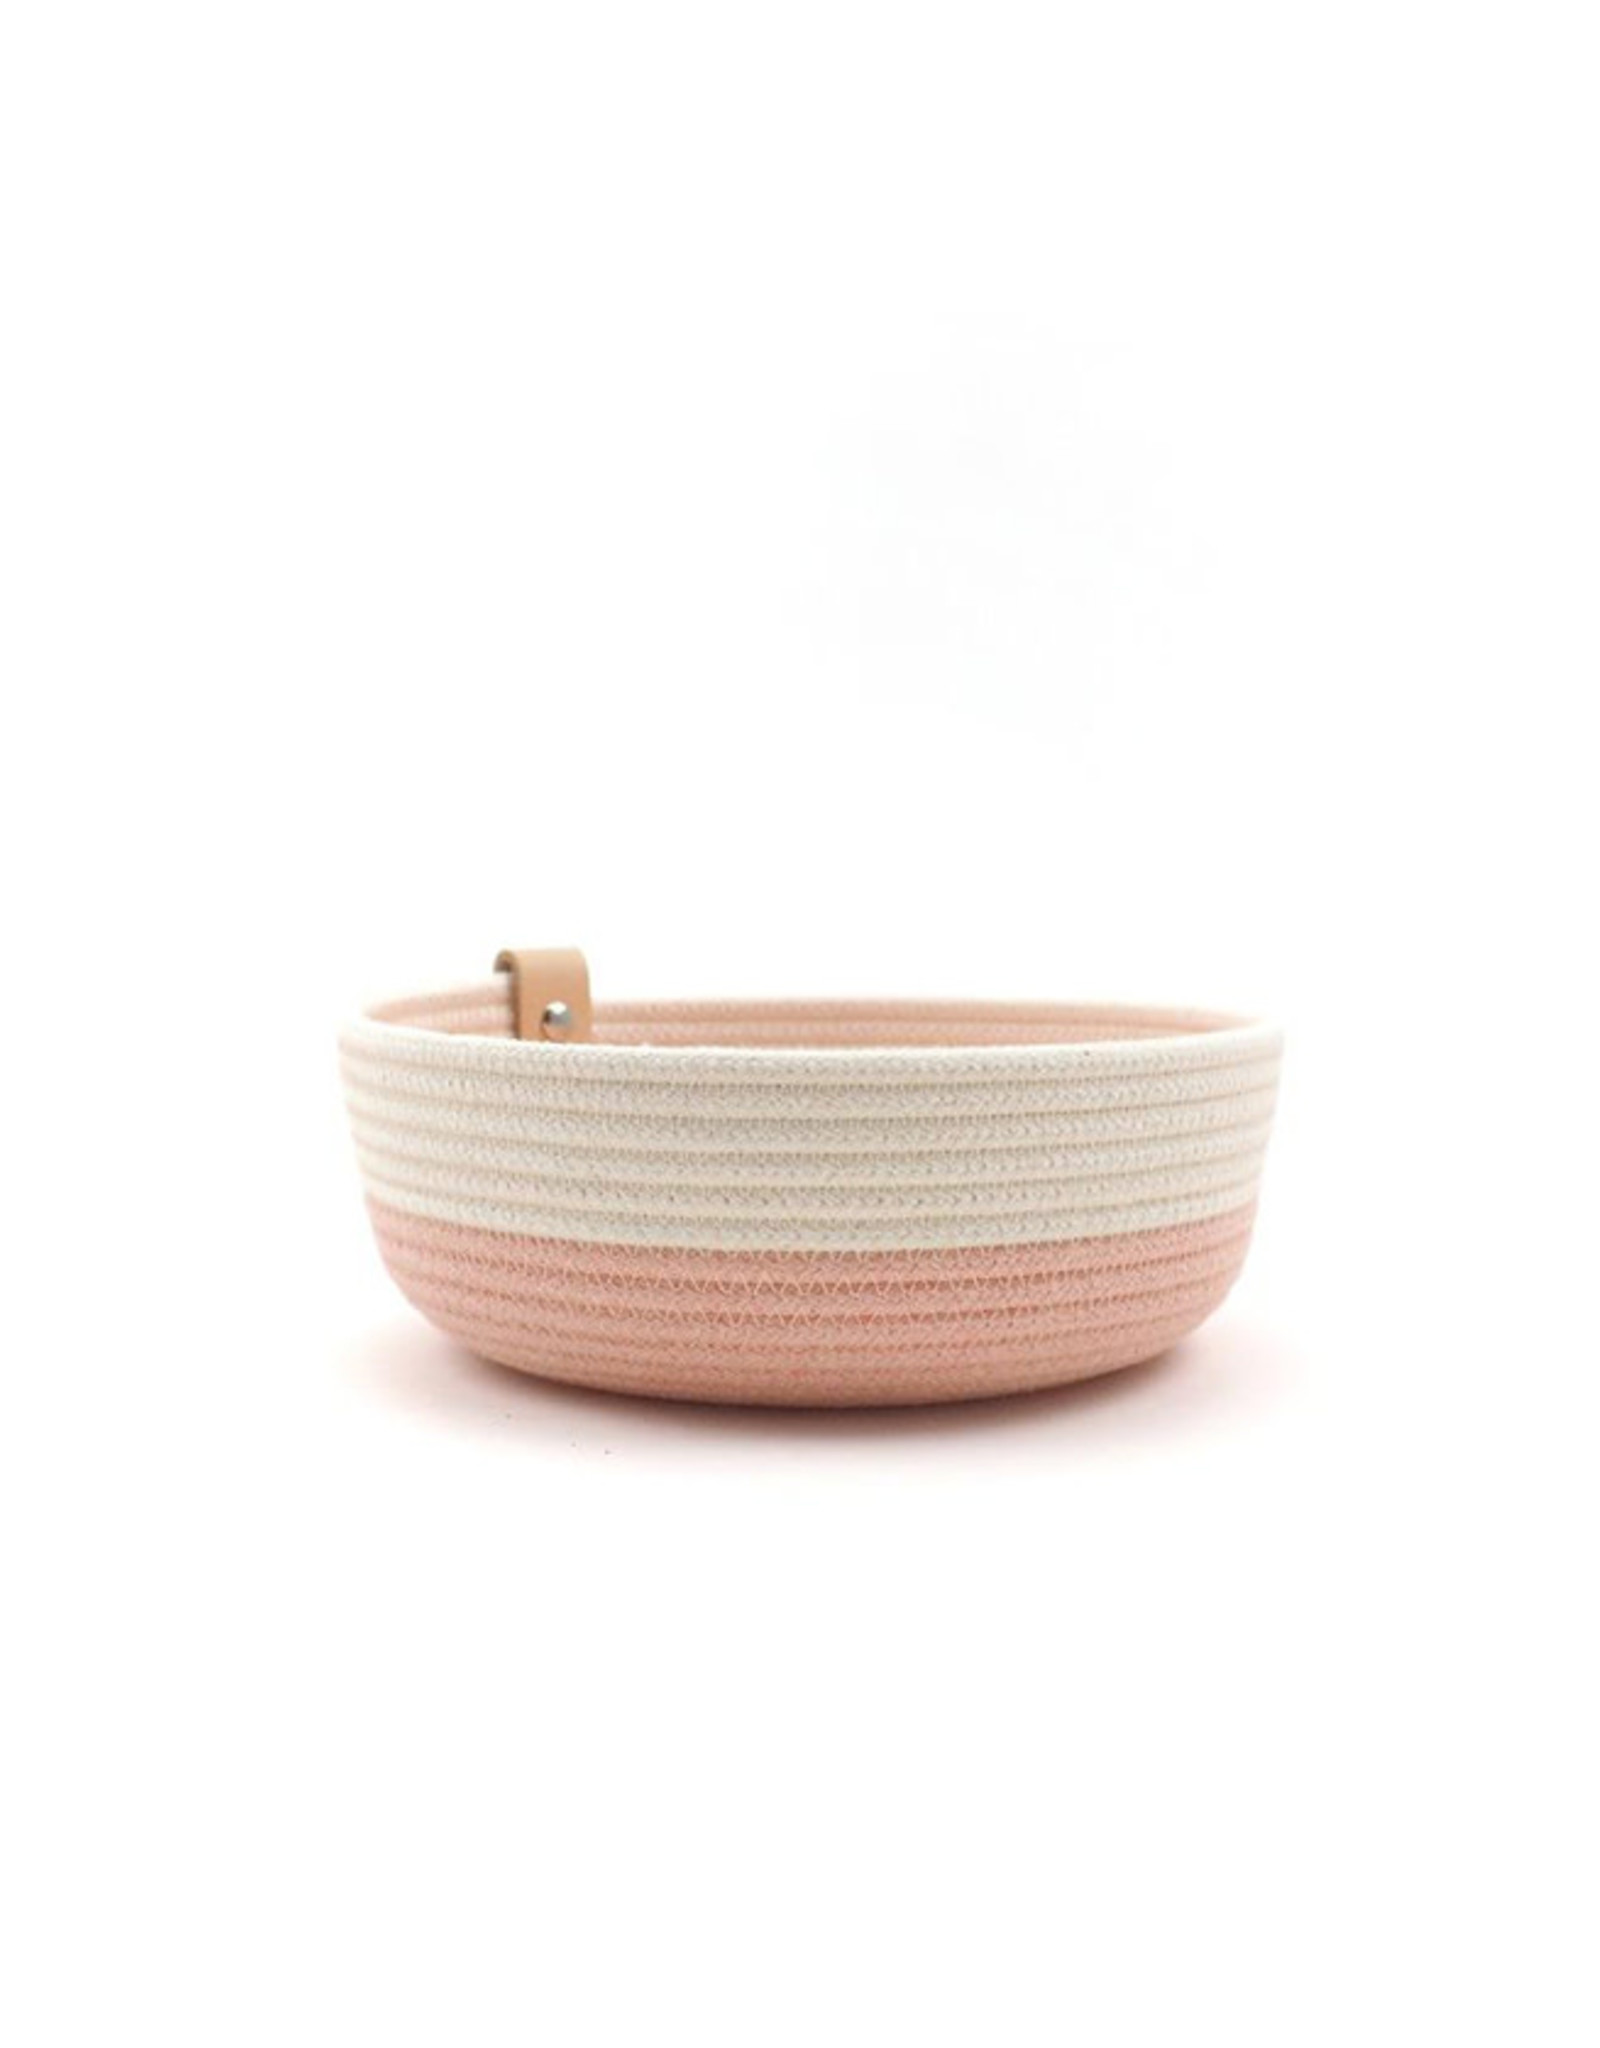 Koba Handmade Bowl Small Low-pastel rose 18x7cm